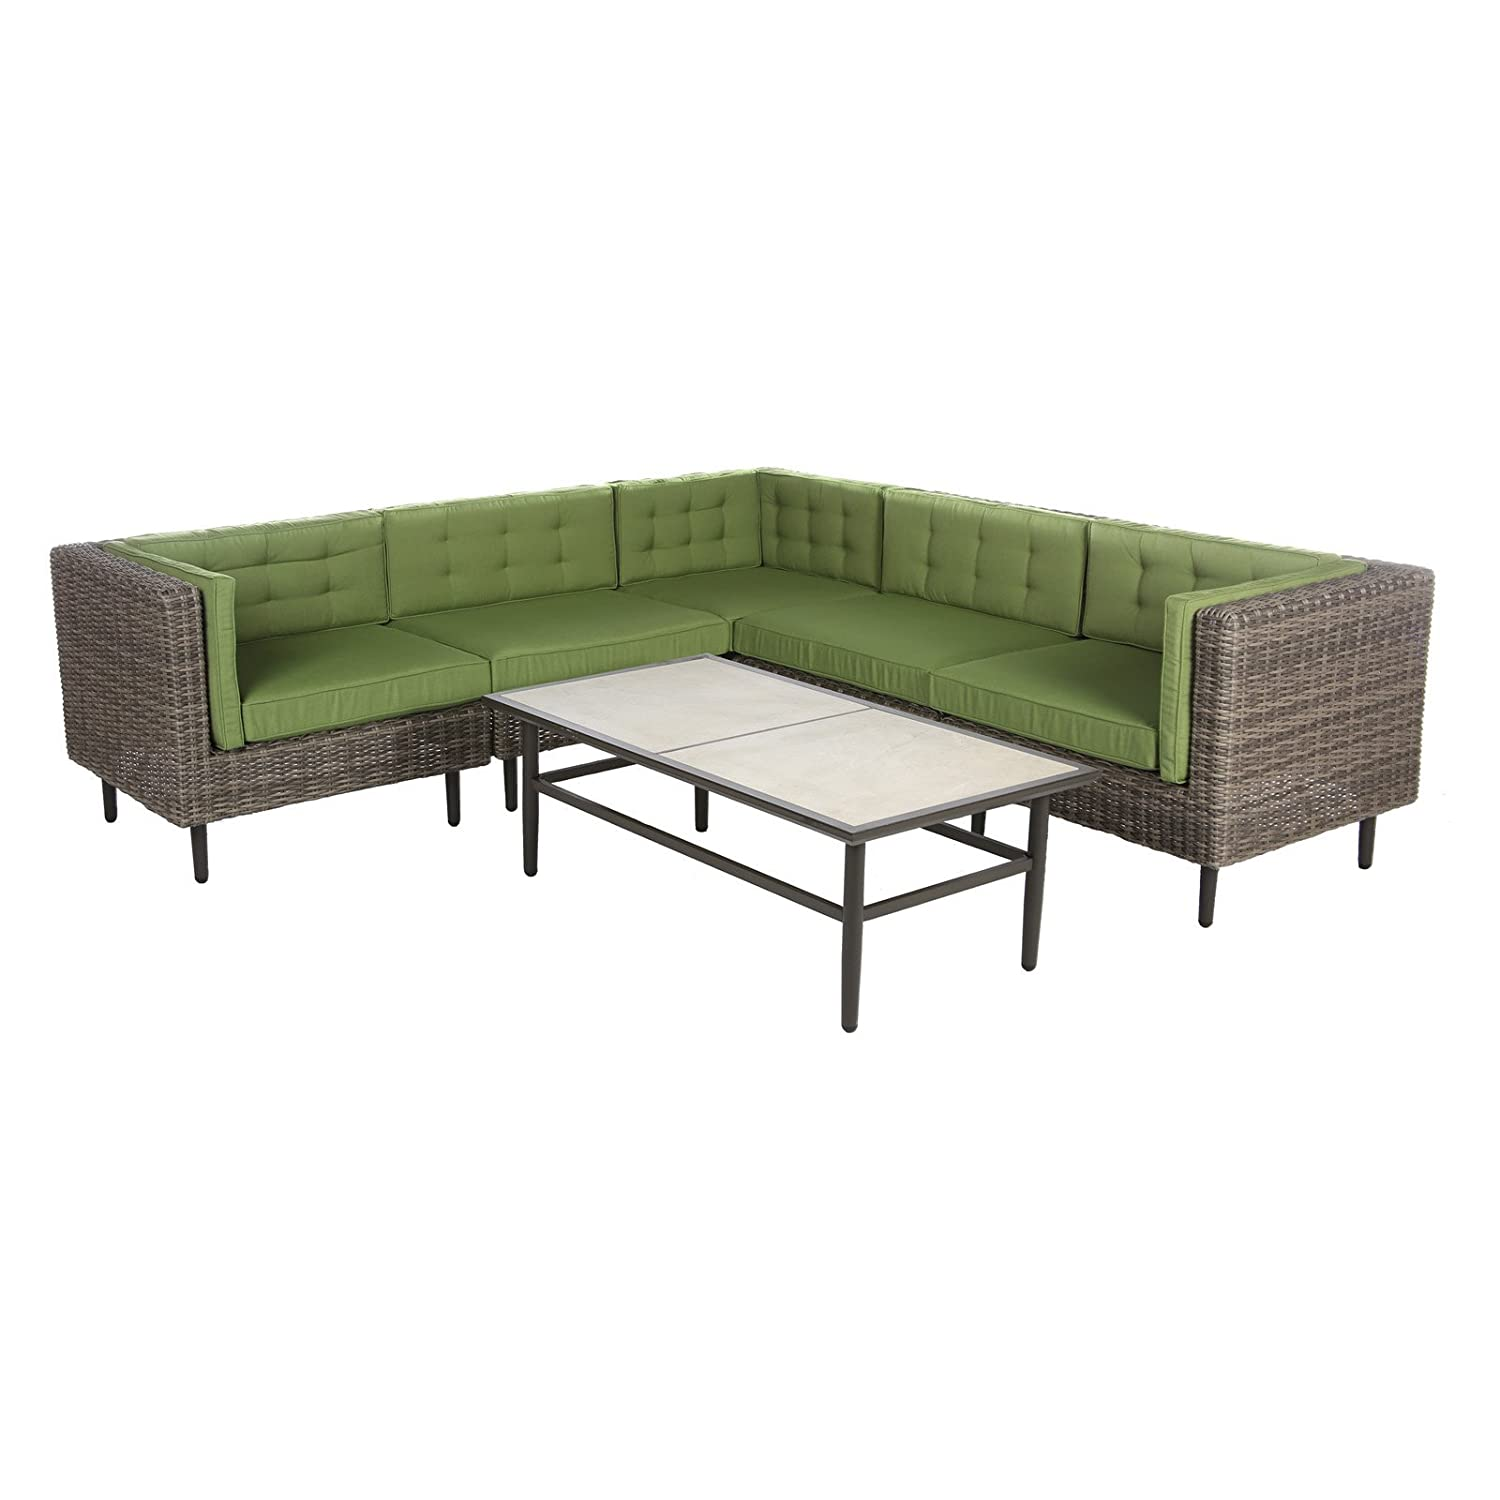 Amazon AE Outdoor Aimee 6 Piece Sectional Sofa with